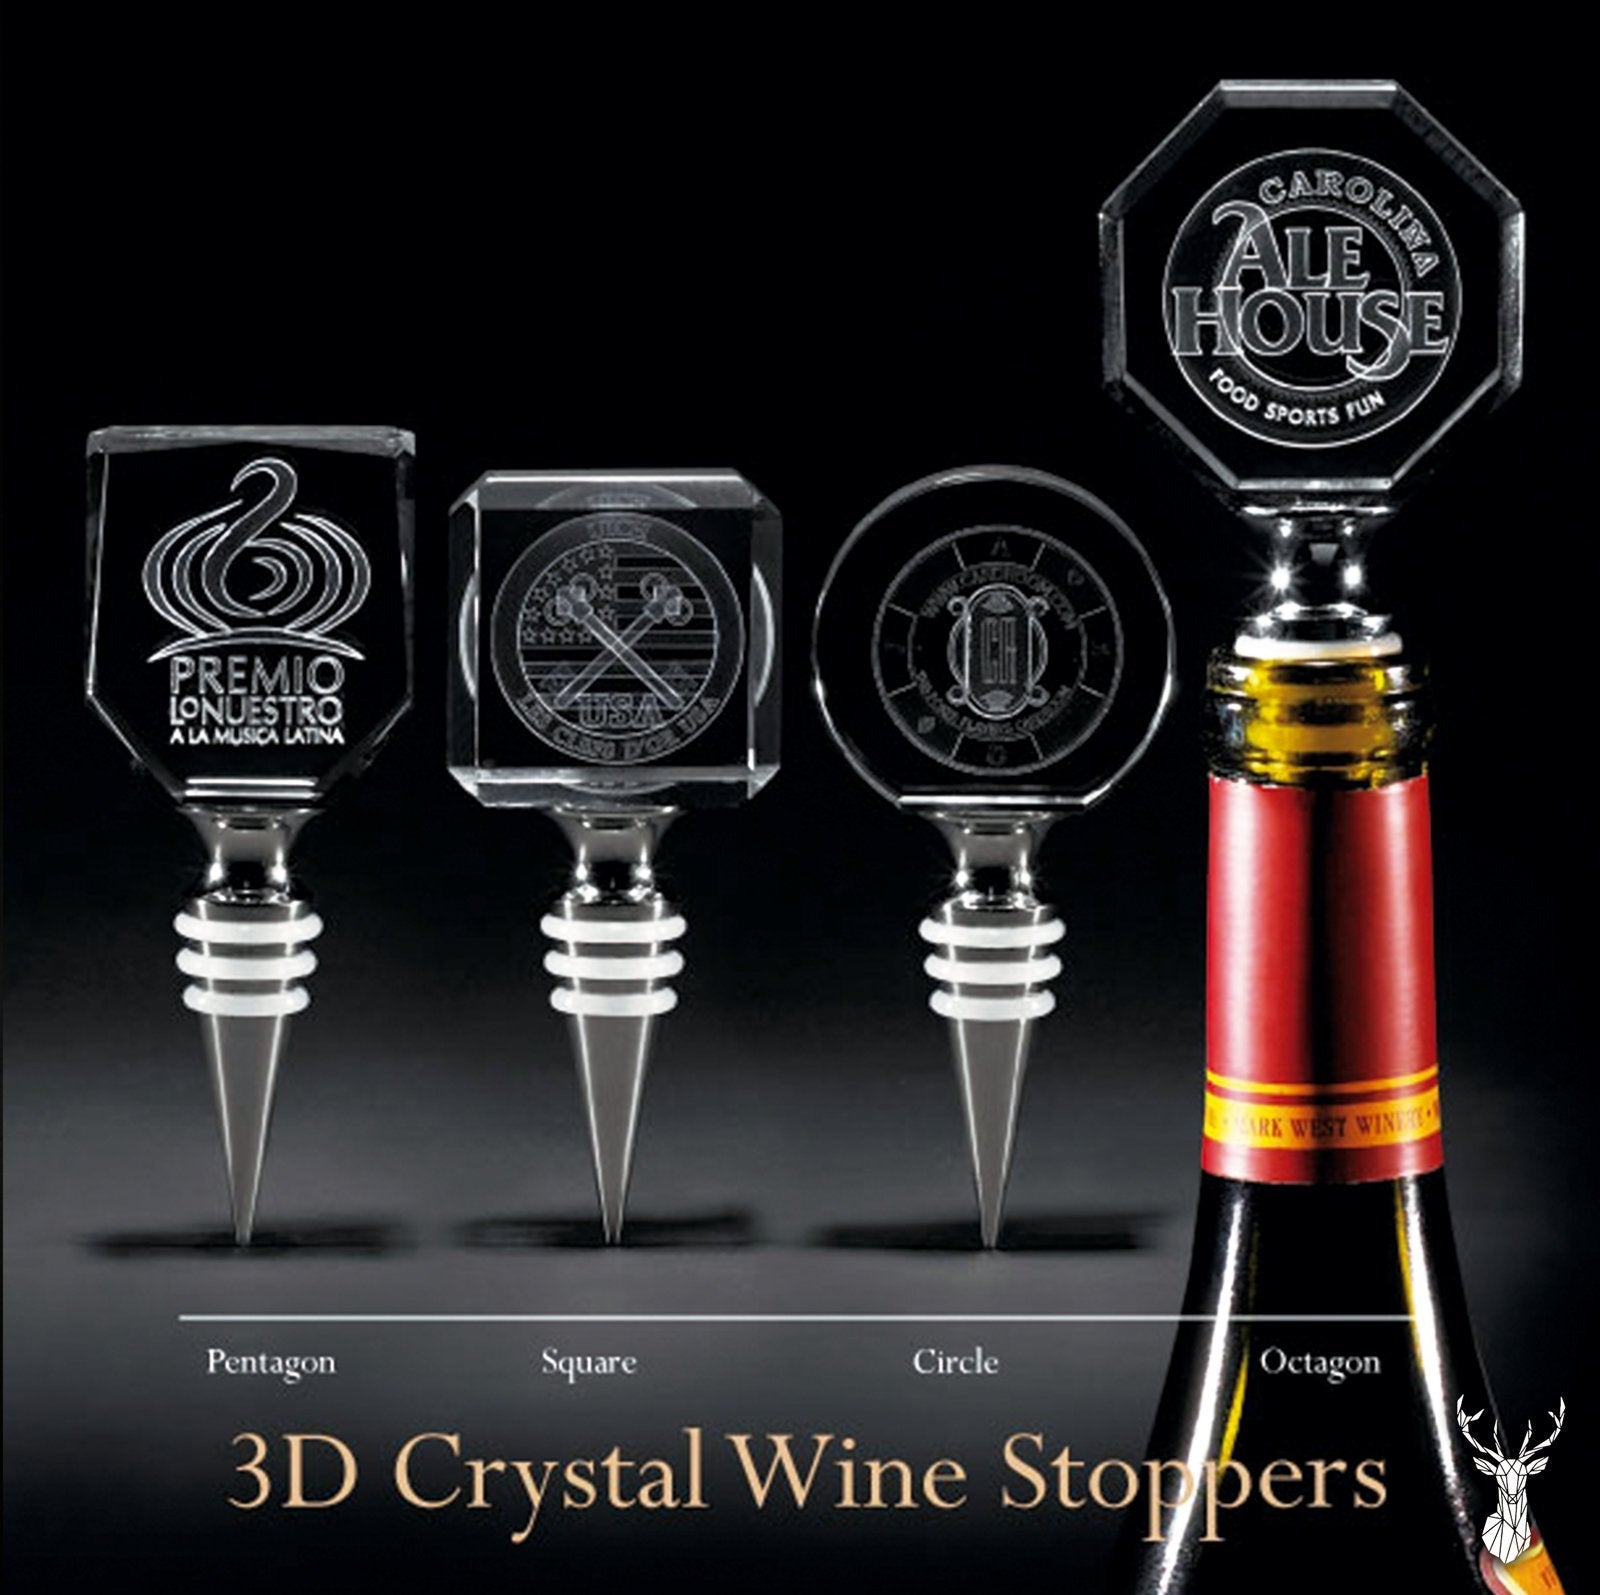 2D  Premier Crystal Wine stopper | Personalized Engraving.